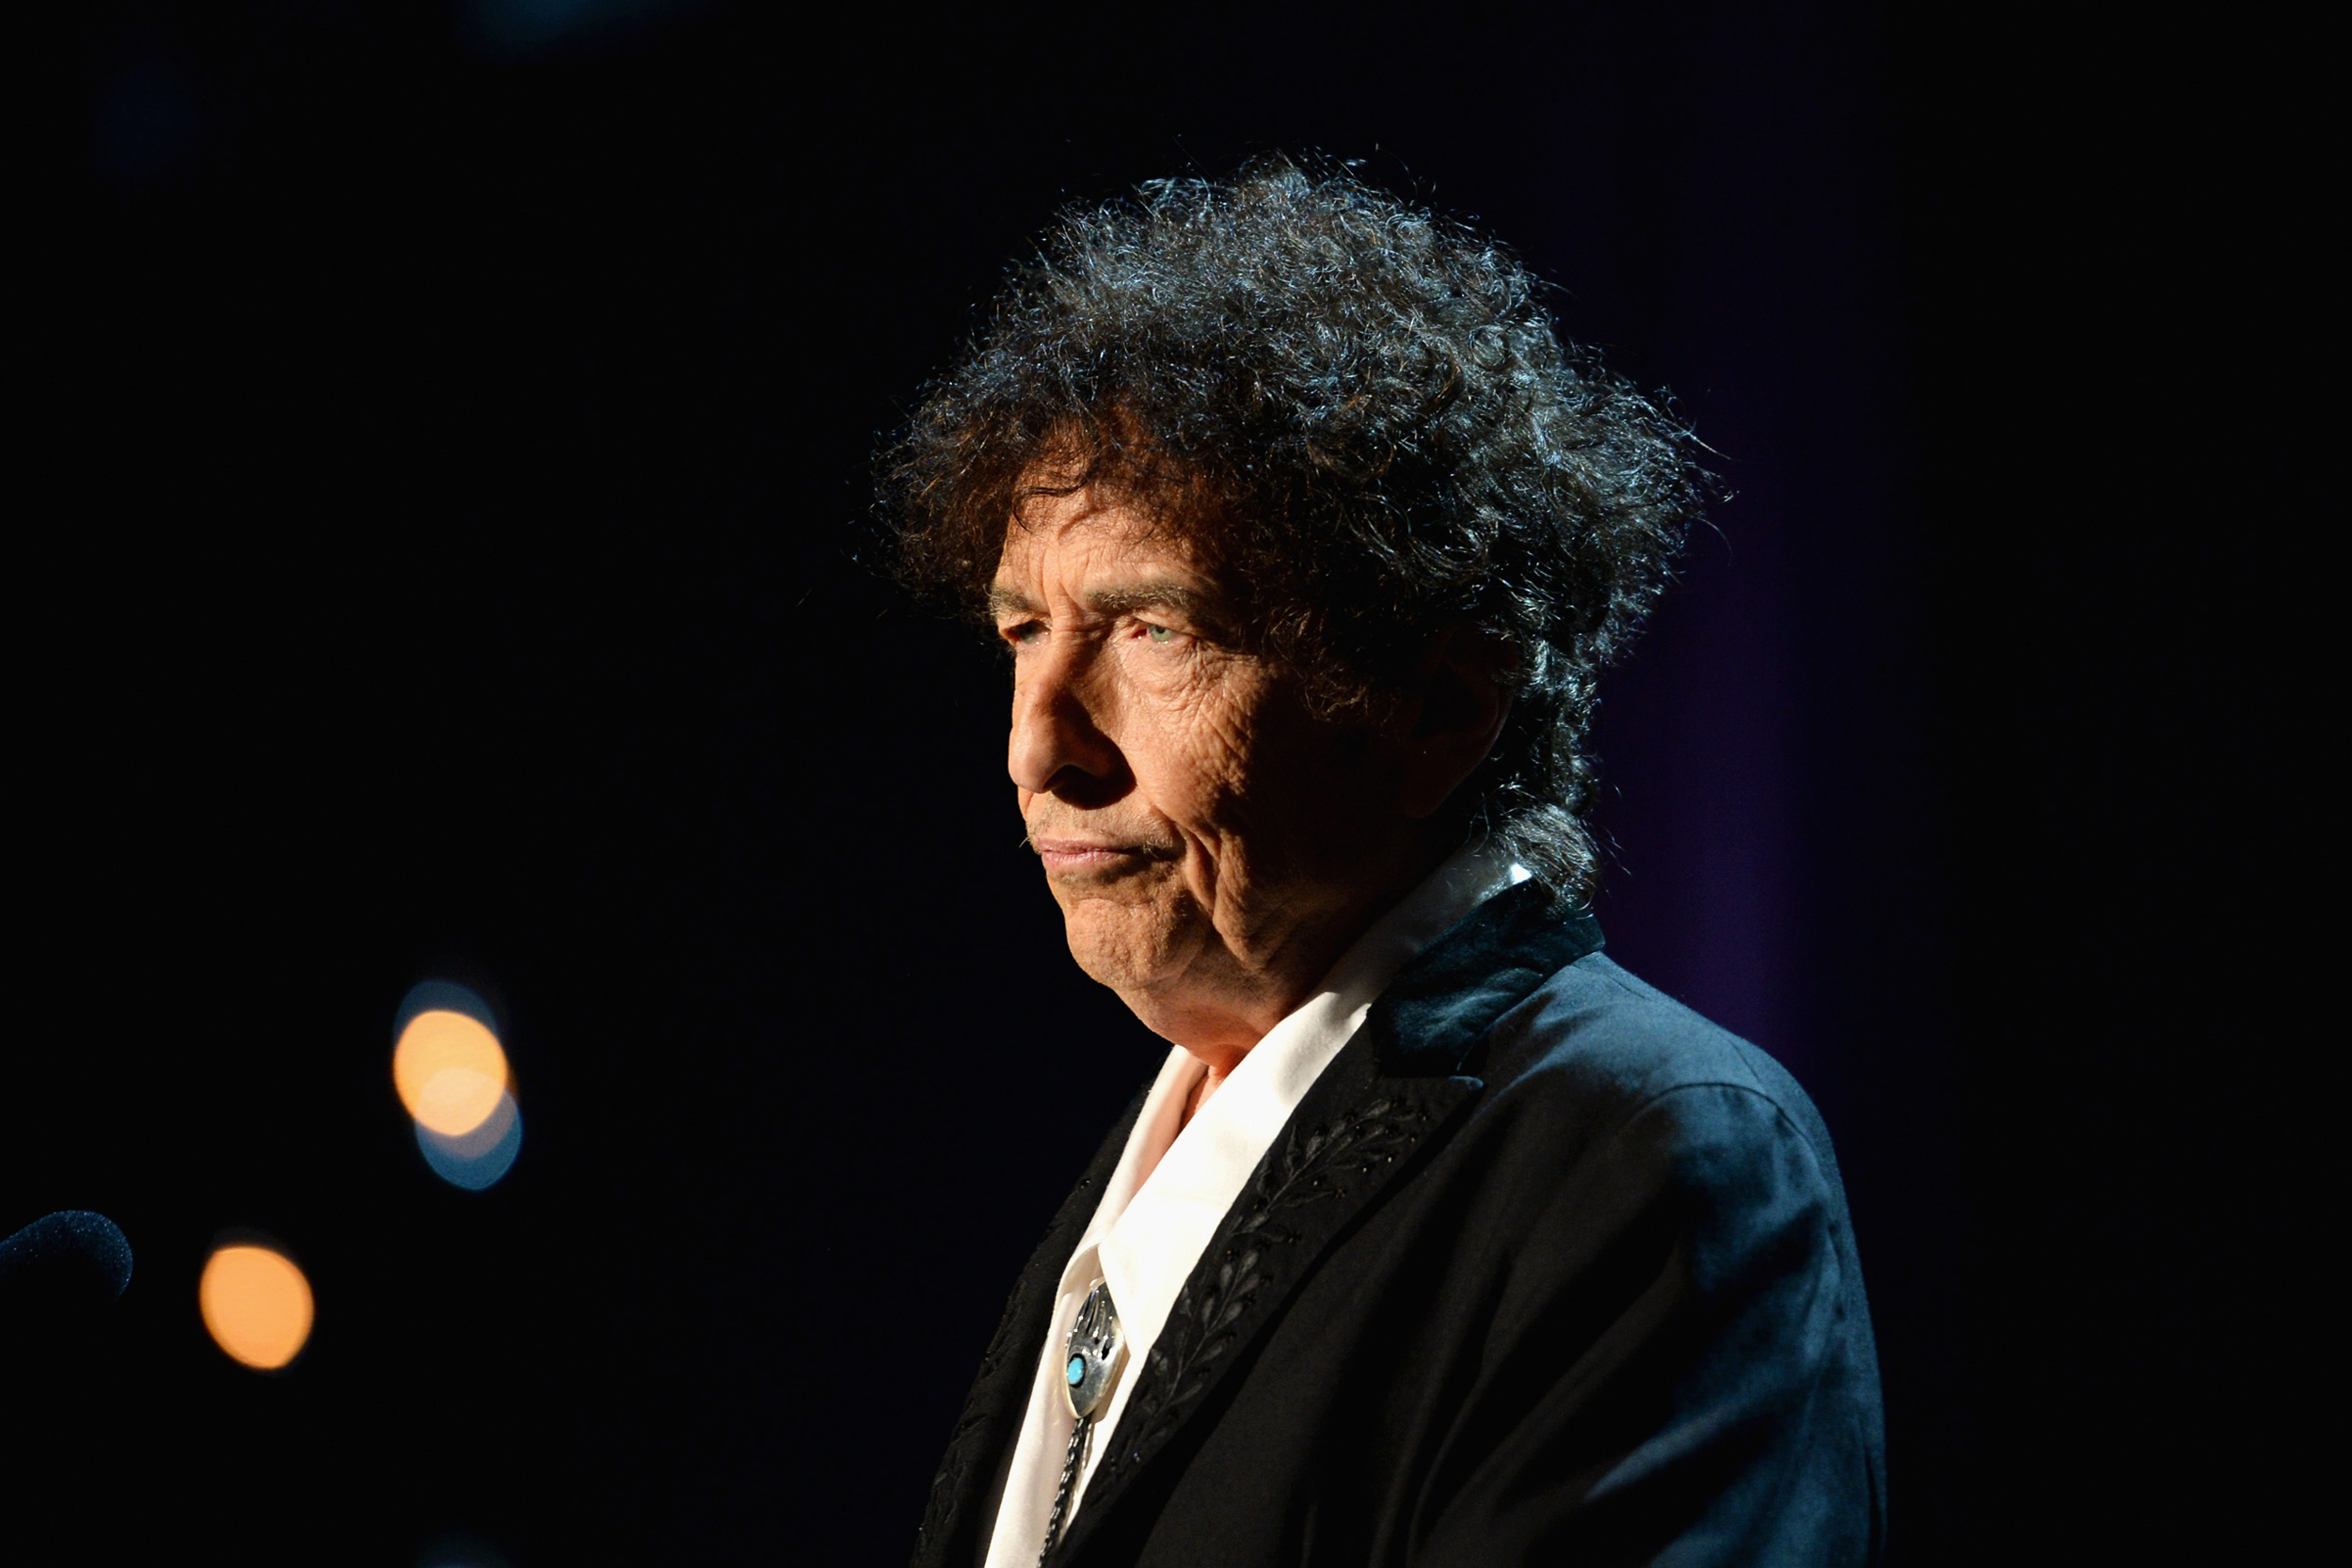 Lawsuit accuses Bob Dylan of drugging, sexually assaulting 12-year-old in 1965